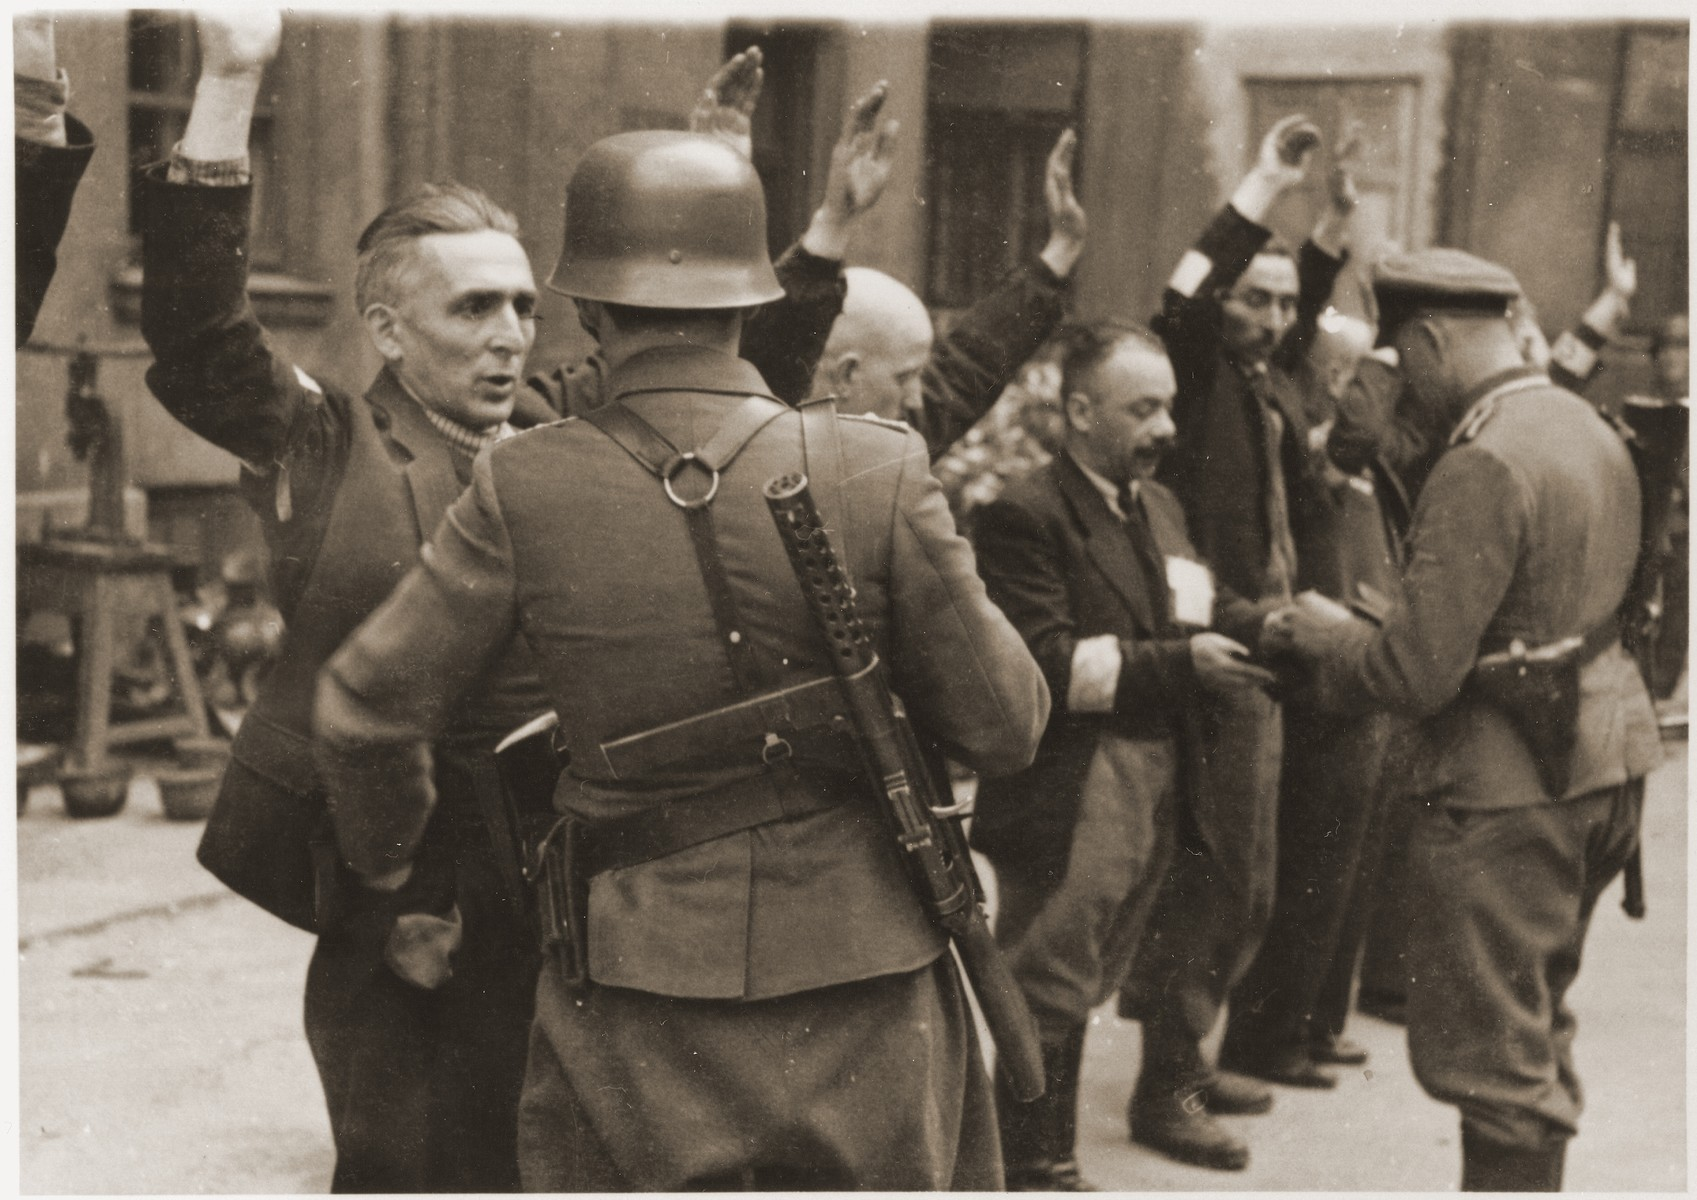 "SS troops and officers search the Jewish department heads of the Brauer armaments factory during the suppression of the Warsaw ghetto uprising.    The original German caption reads: ""The Brauer firm.""  Original caption from donated photograph reads:  ""The following pictures are copies of the book conaning the report of the German commander who was responsible for cleaning out that ghetto in Warsaw, Poland.  This report, in the form of a leather bound book, was presented as evidence by the U.S. prosecution, Maj. Frank Walsh, at the international tribunal trials at Nurnberg, Germany."""